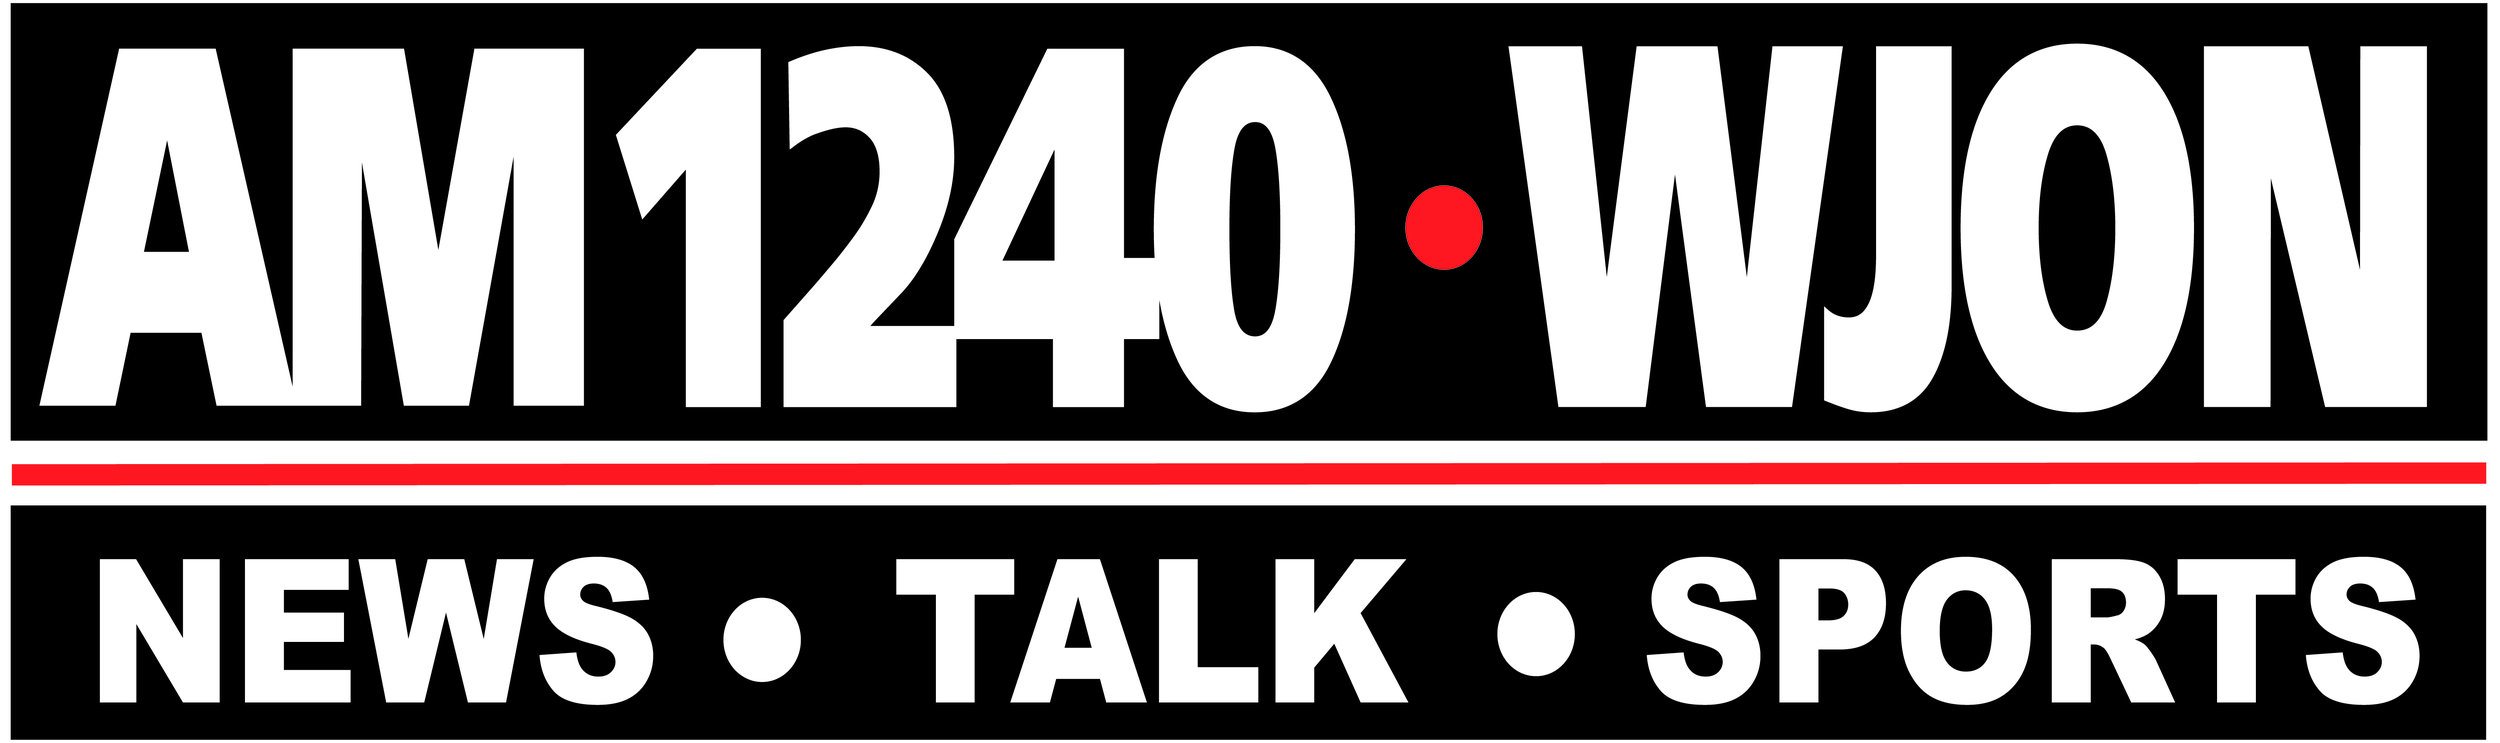 wjon news talk sports raster.jpg